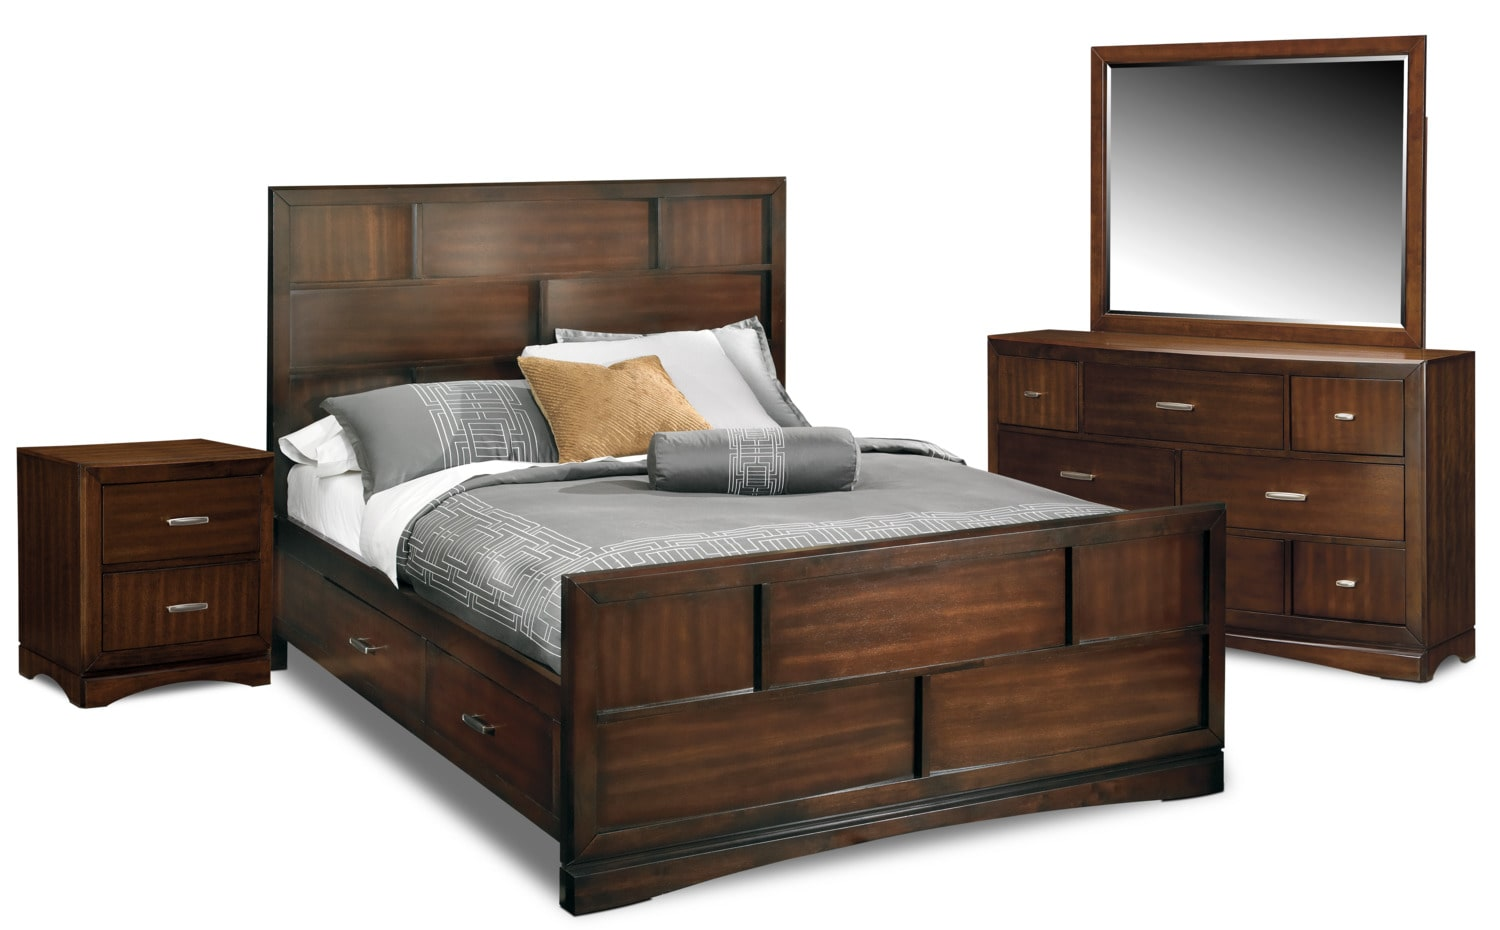 Bedroom Furniture   Toronto 6 Piece Queen Storage Bedroom Set   Pecan